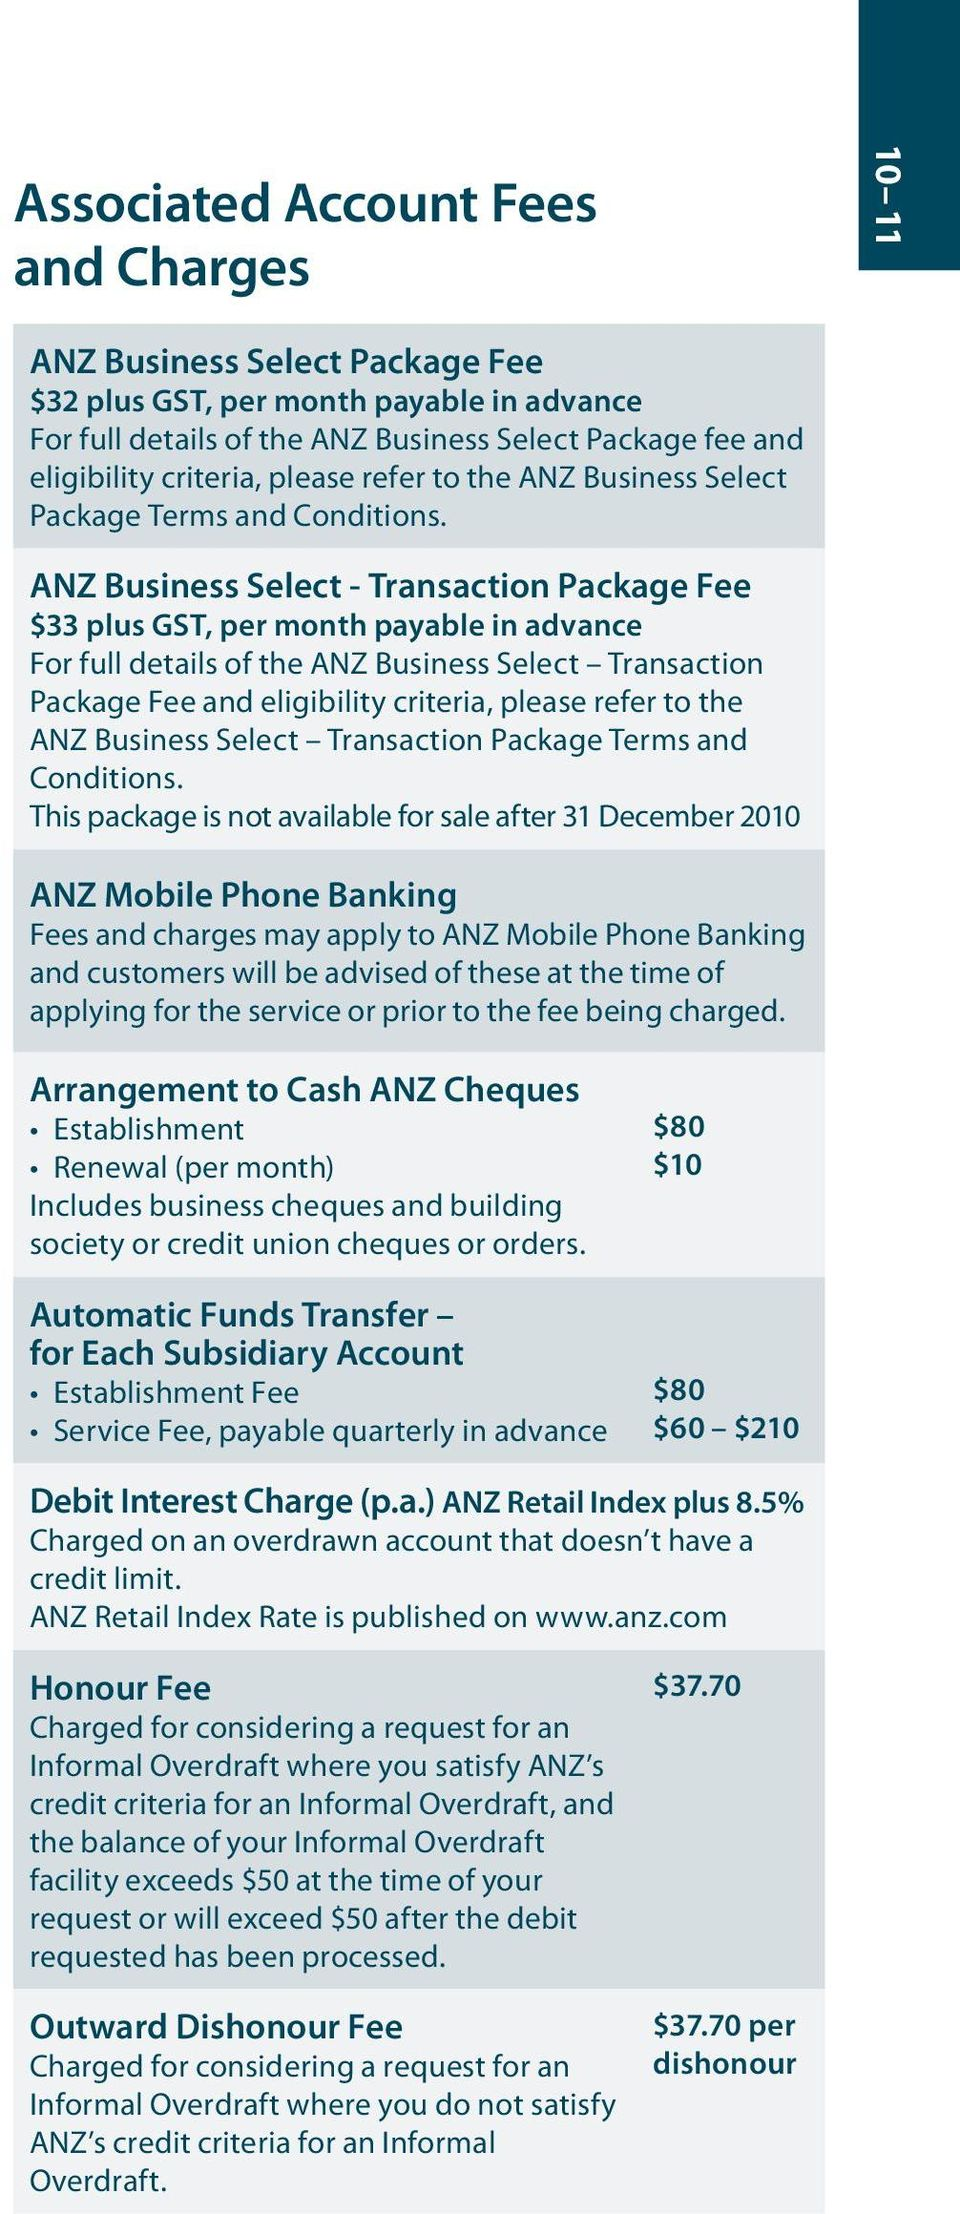 ANZ Business Select - Transaction Package Fee $33 plus GST, per month payable in advance For full details of the ANZ Business Select Transaction Package Fee and eligibility criteria, please refer to